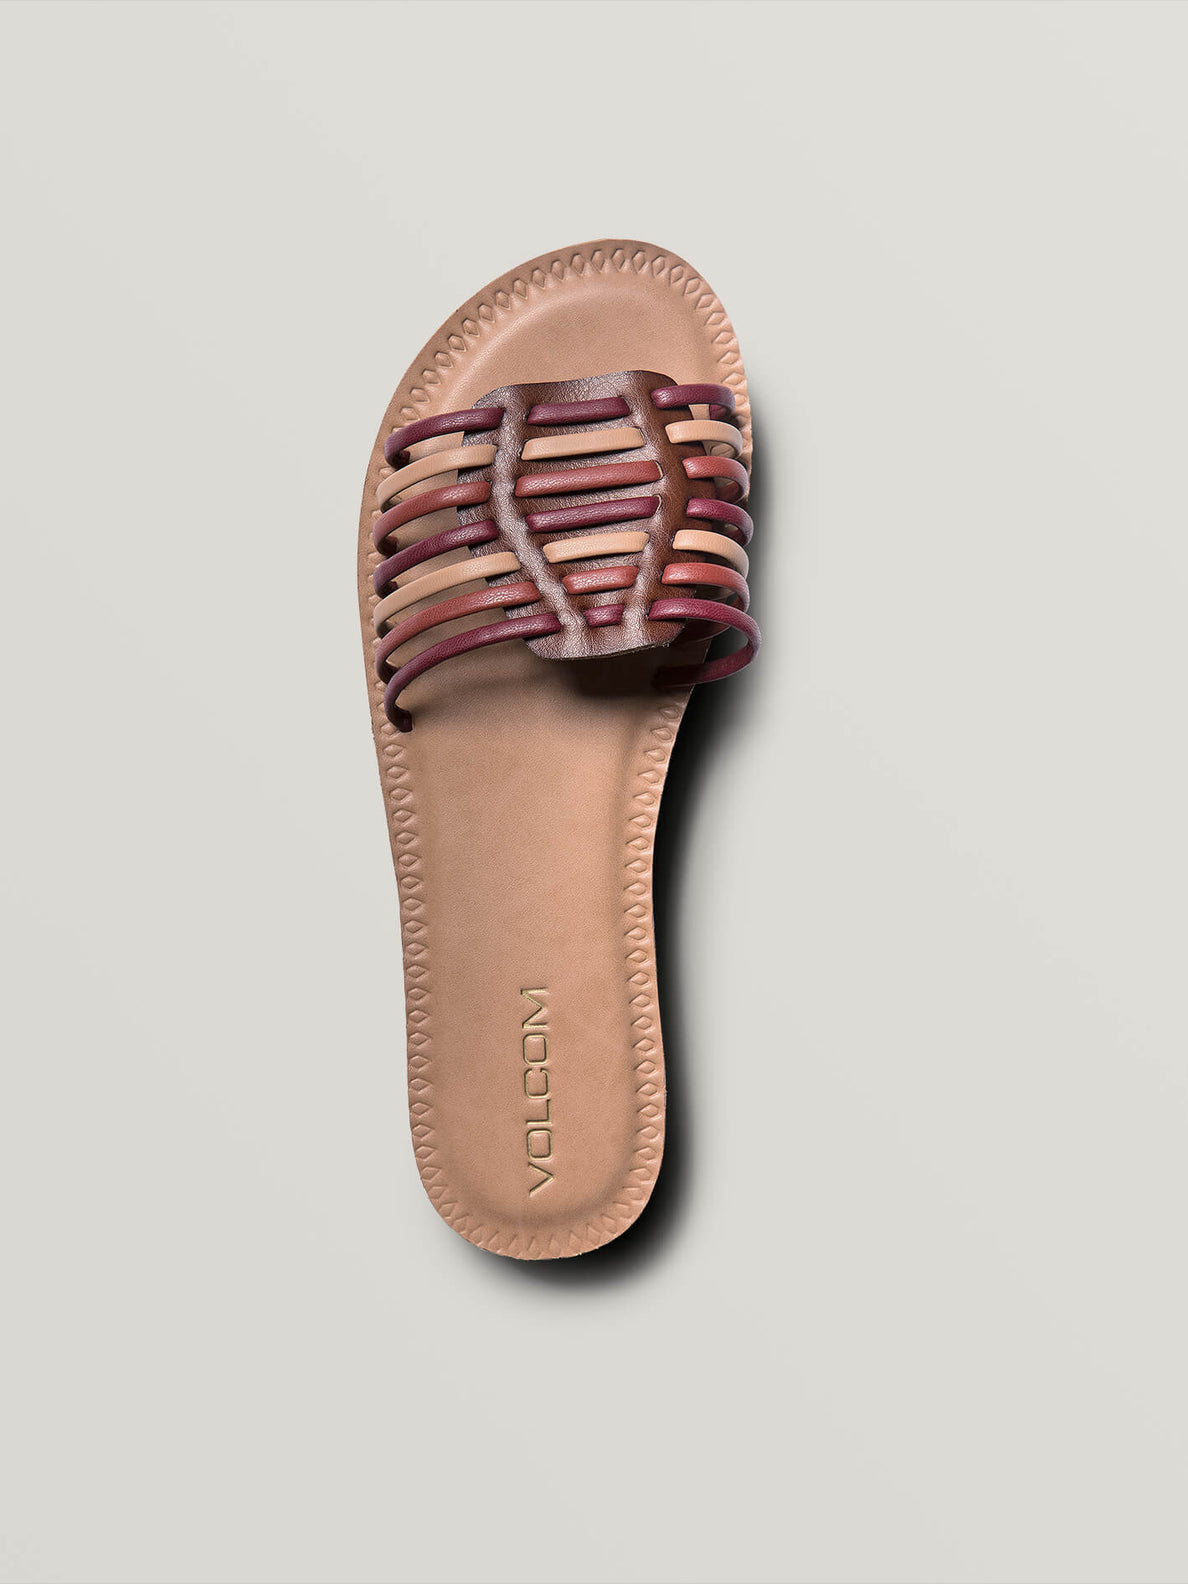 Porto Sandals In Bark Brown, Alternate View